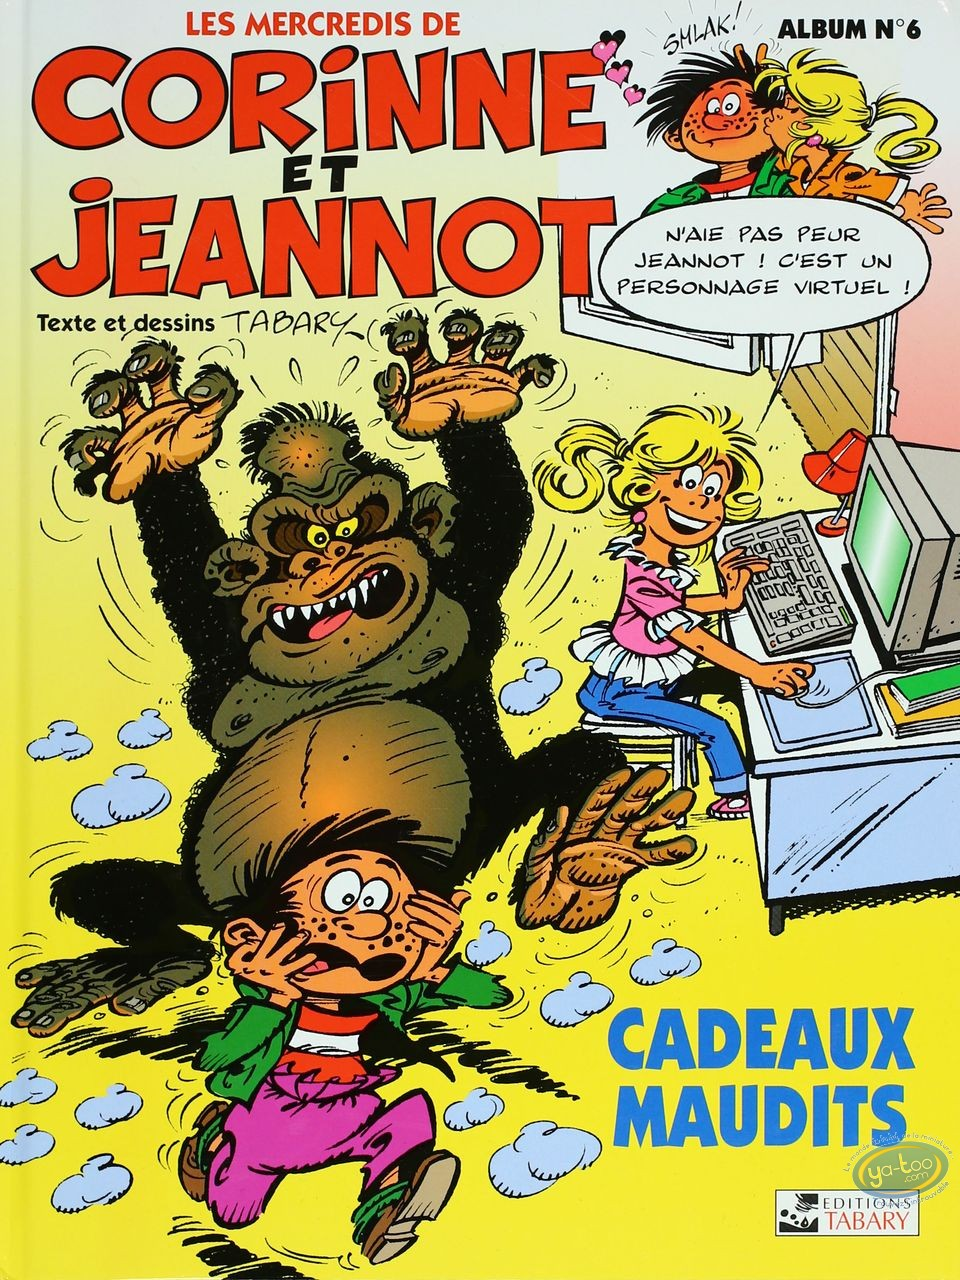 Reduced price European comic books, Corinne et Jeannot : Cursed presents - Every Wednesday of Corinne and Jeannot Tome 6